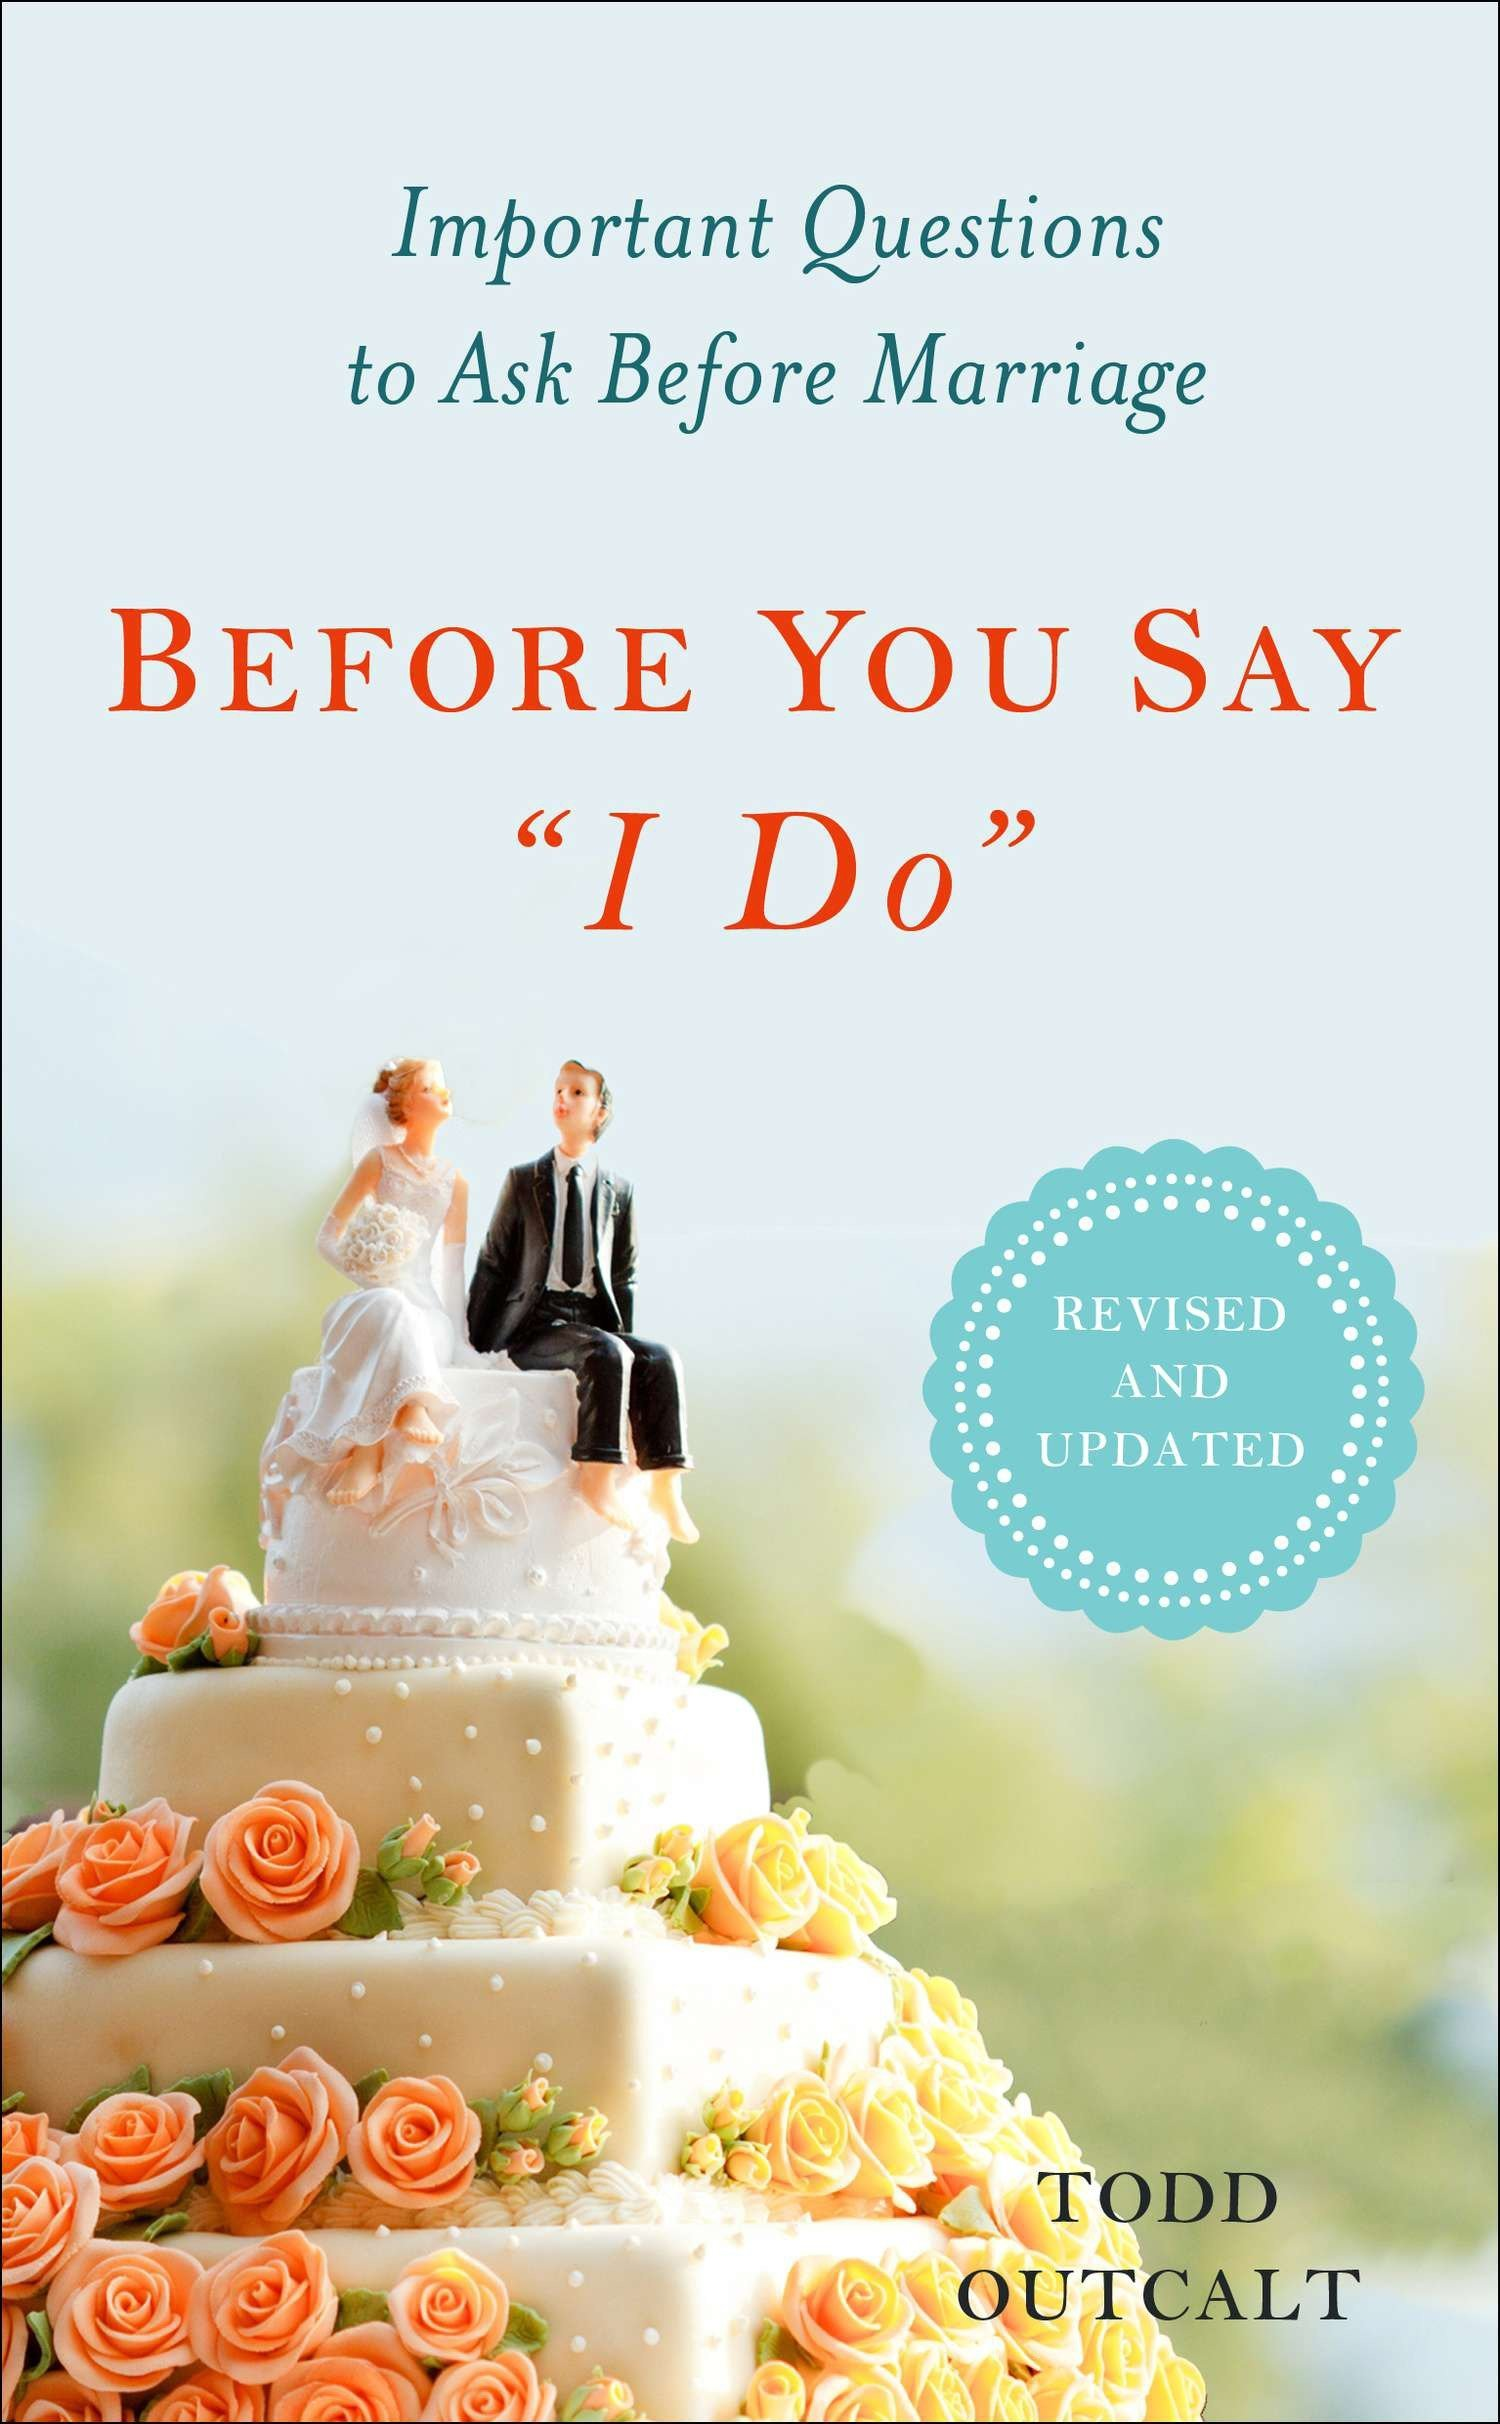 "Before You Say ""I Do"": Important Questions to Ask Before Marriage, Revised  and Updated: Todd Outcalt: 9780399167126: Amazon.com: Books"